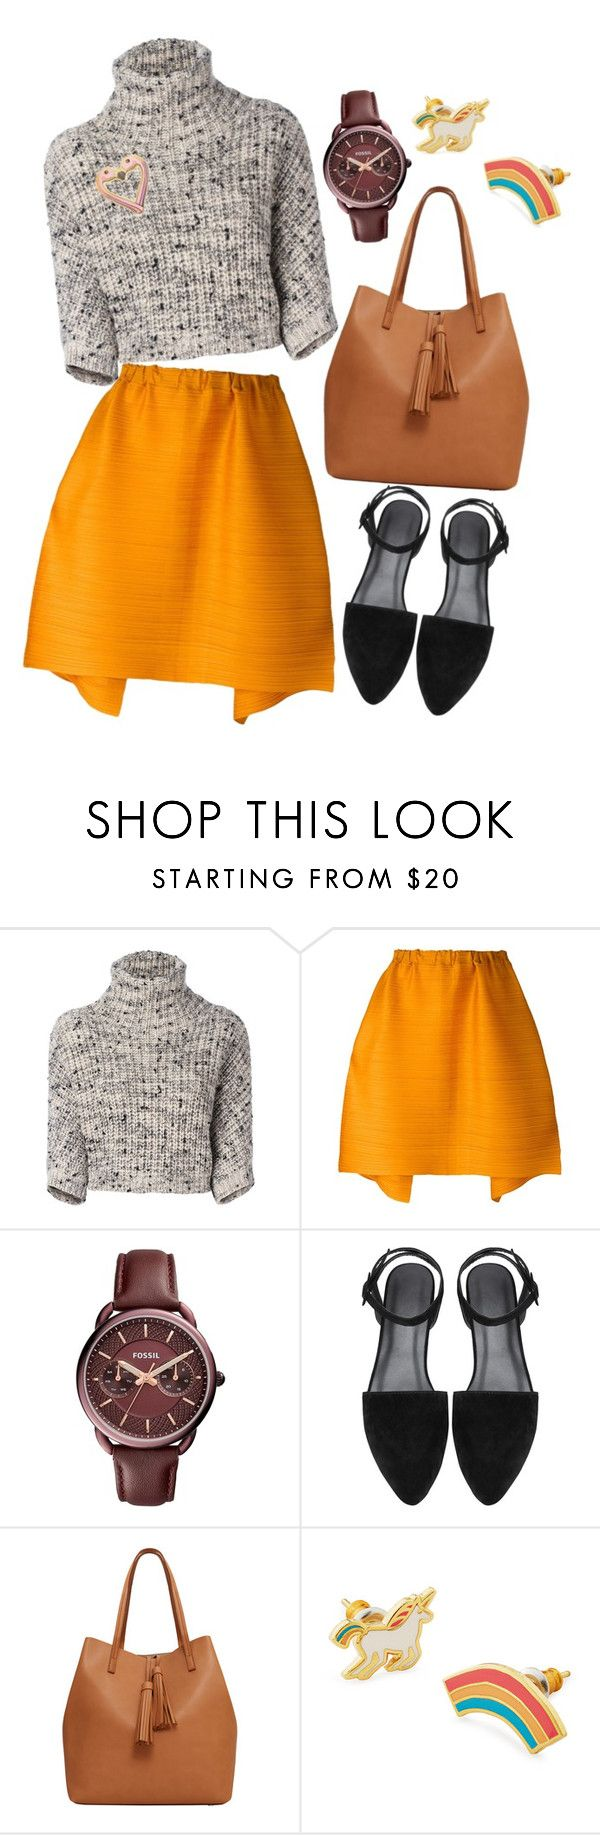 """""""Untitled #302"""" by racita on Polyvore featuring Brunello Cucinelli, Pleats Please by Issey Miyake, FOSSIL, MANGO and Yellow Owl Workshop"""